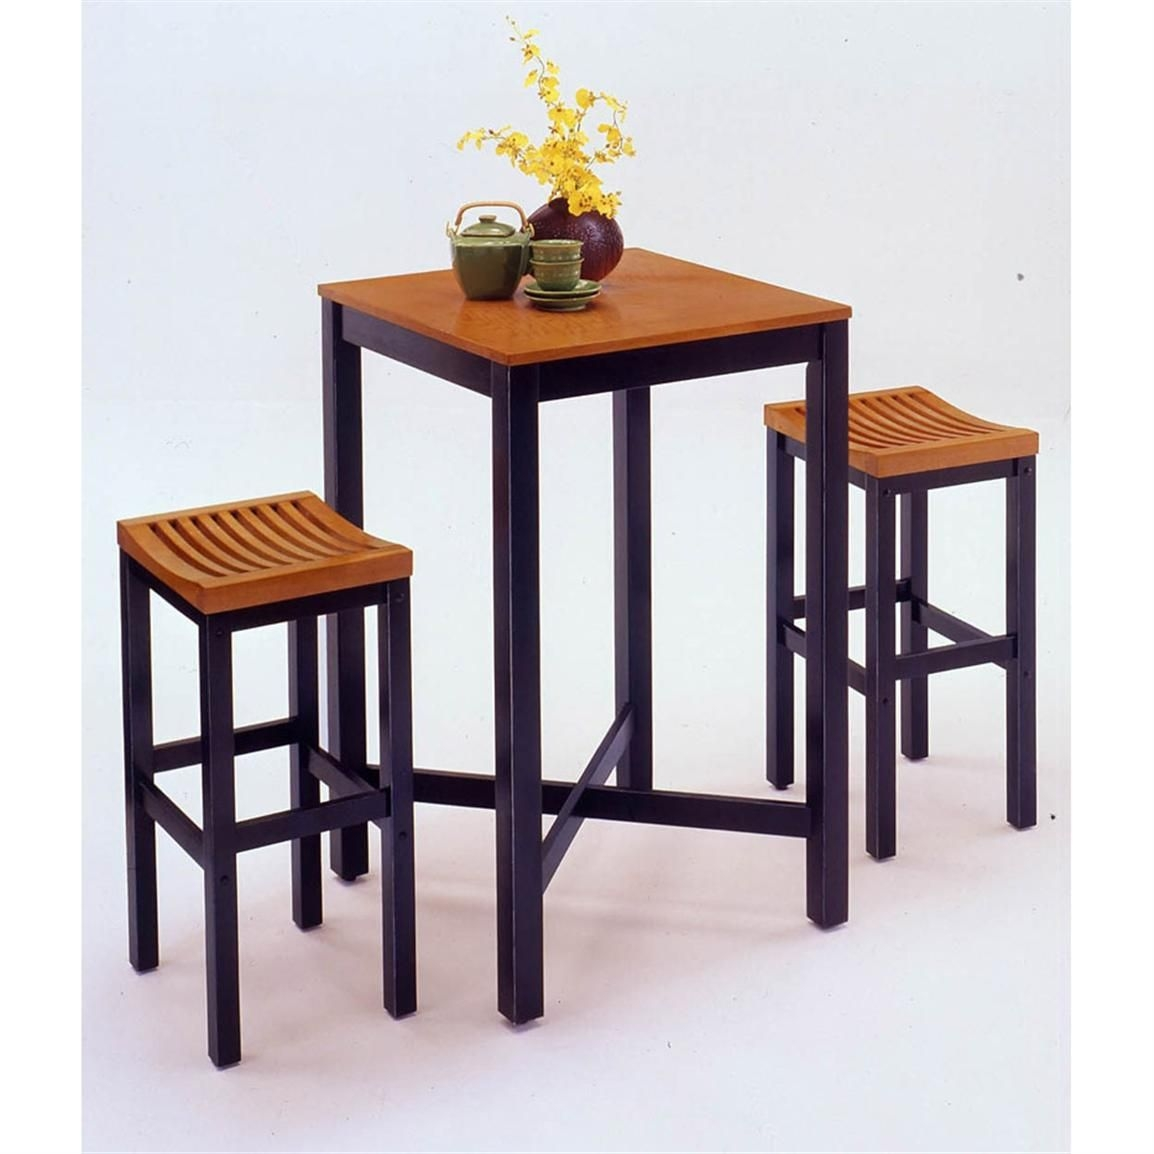 Home Styles™ Bar Table Black With Veneer Oak Top  38891 Kitchen  Dining Stools At Sportsman